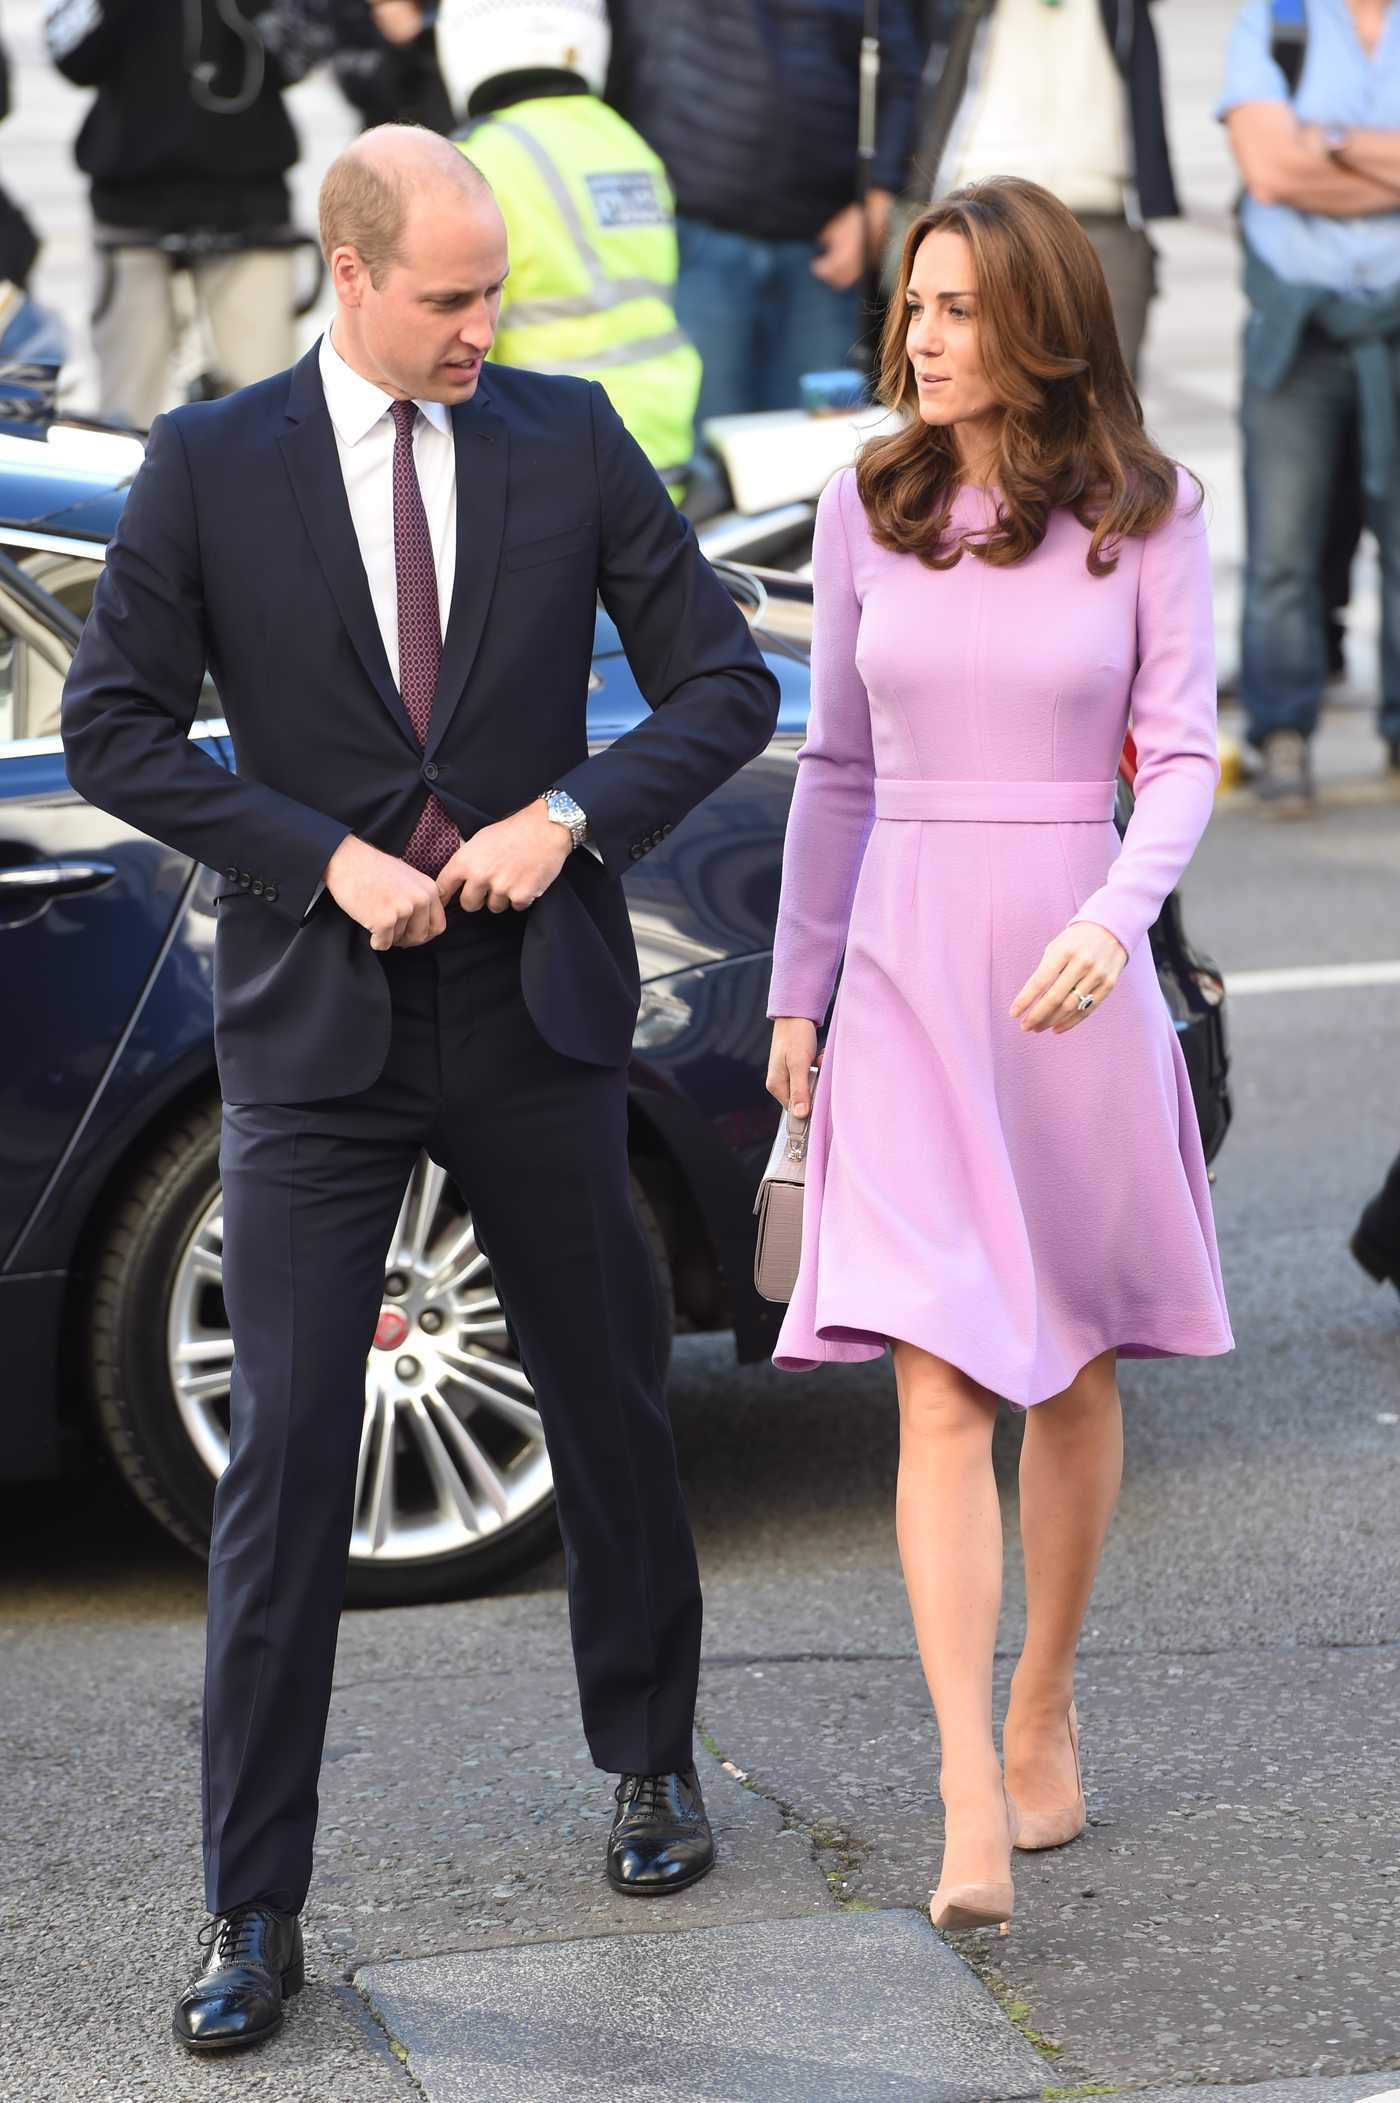 Kate Middleton in a Purple Dress Arrives at the First Global Ministerial Mental Health Summit in London 10/09/2018